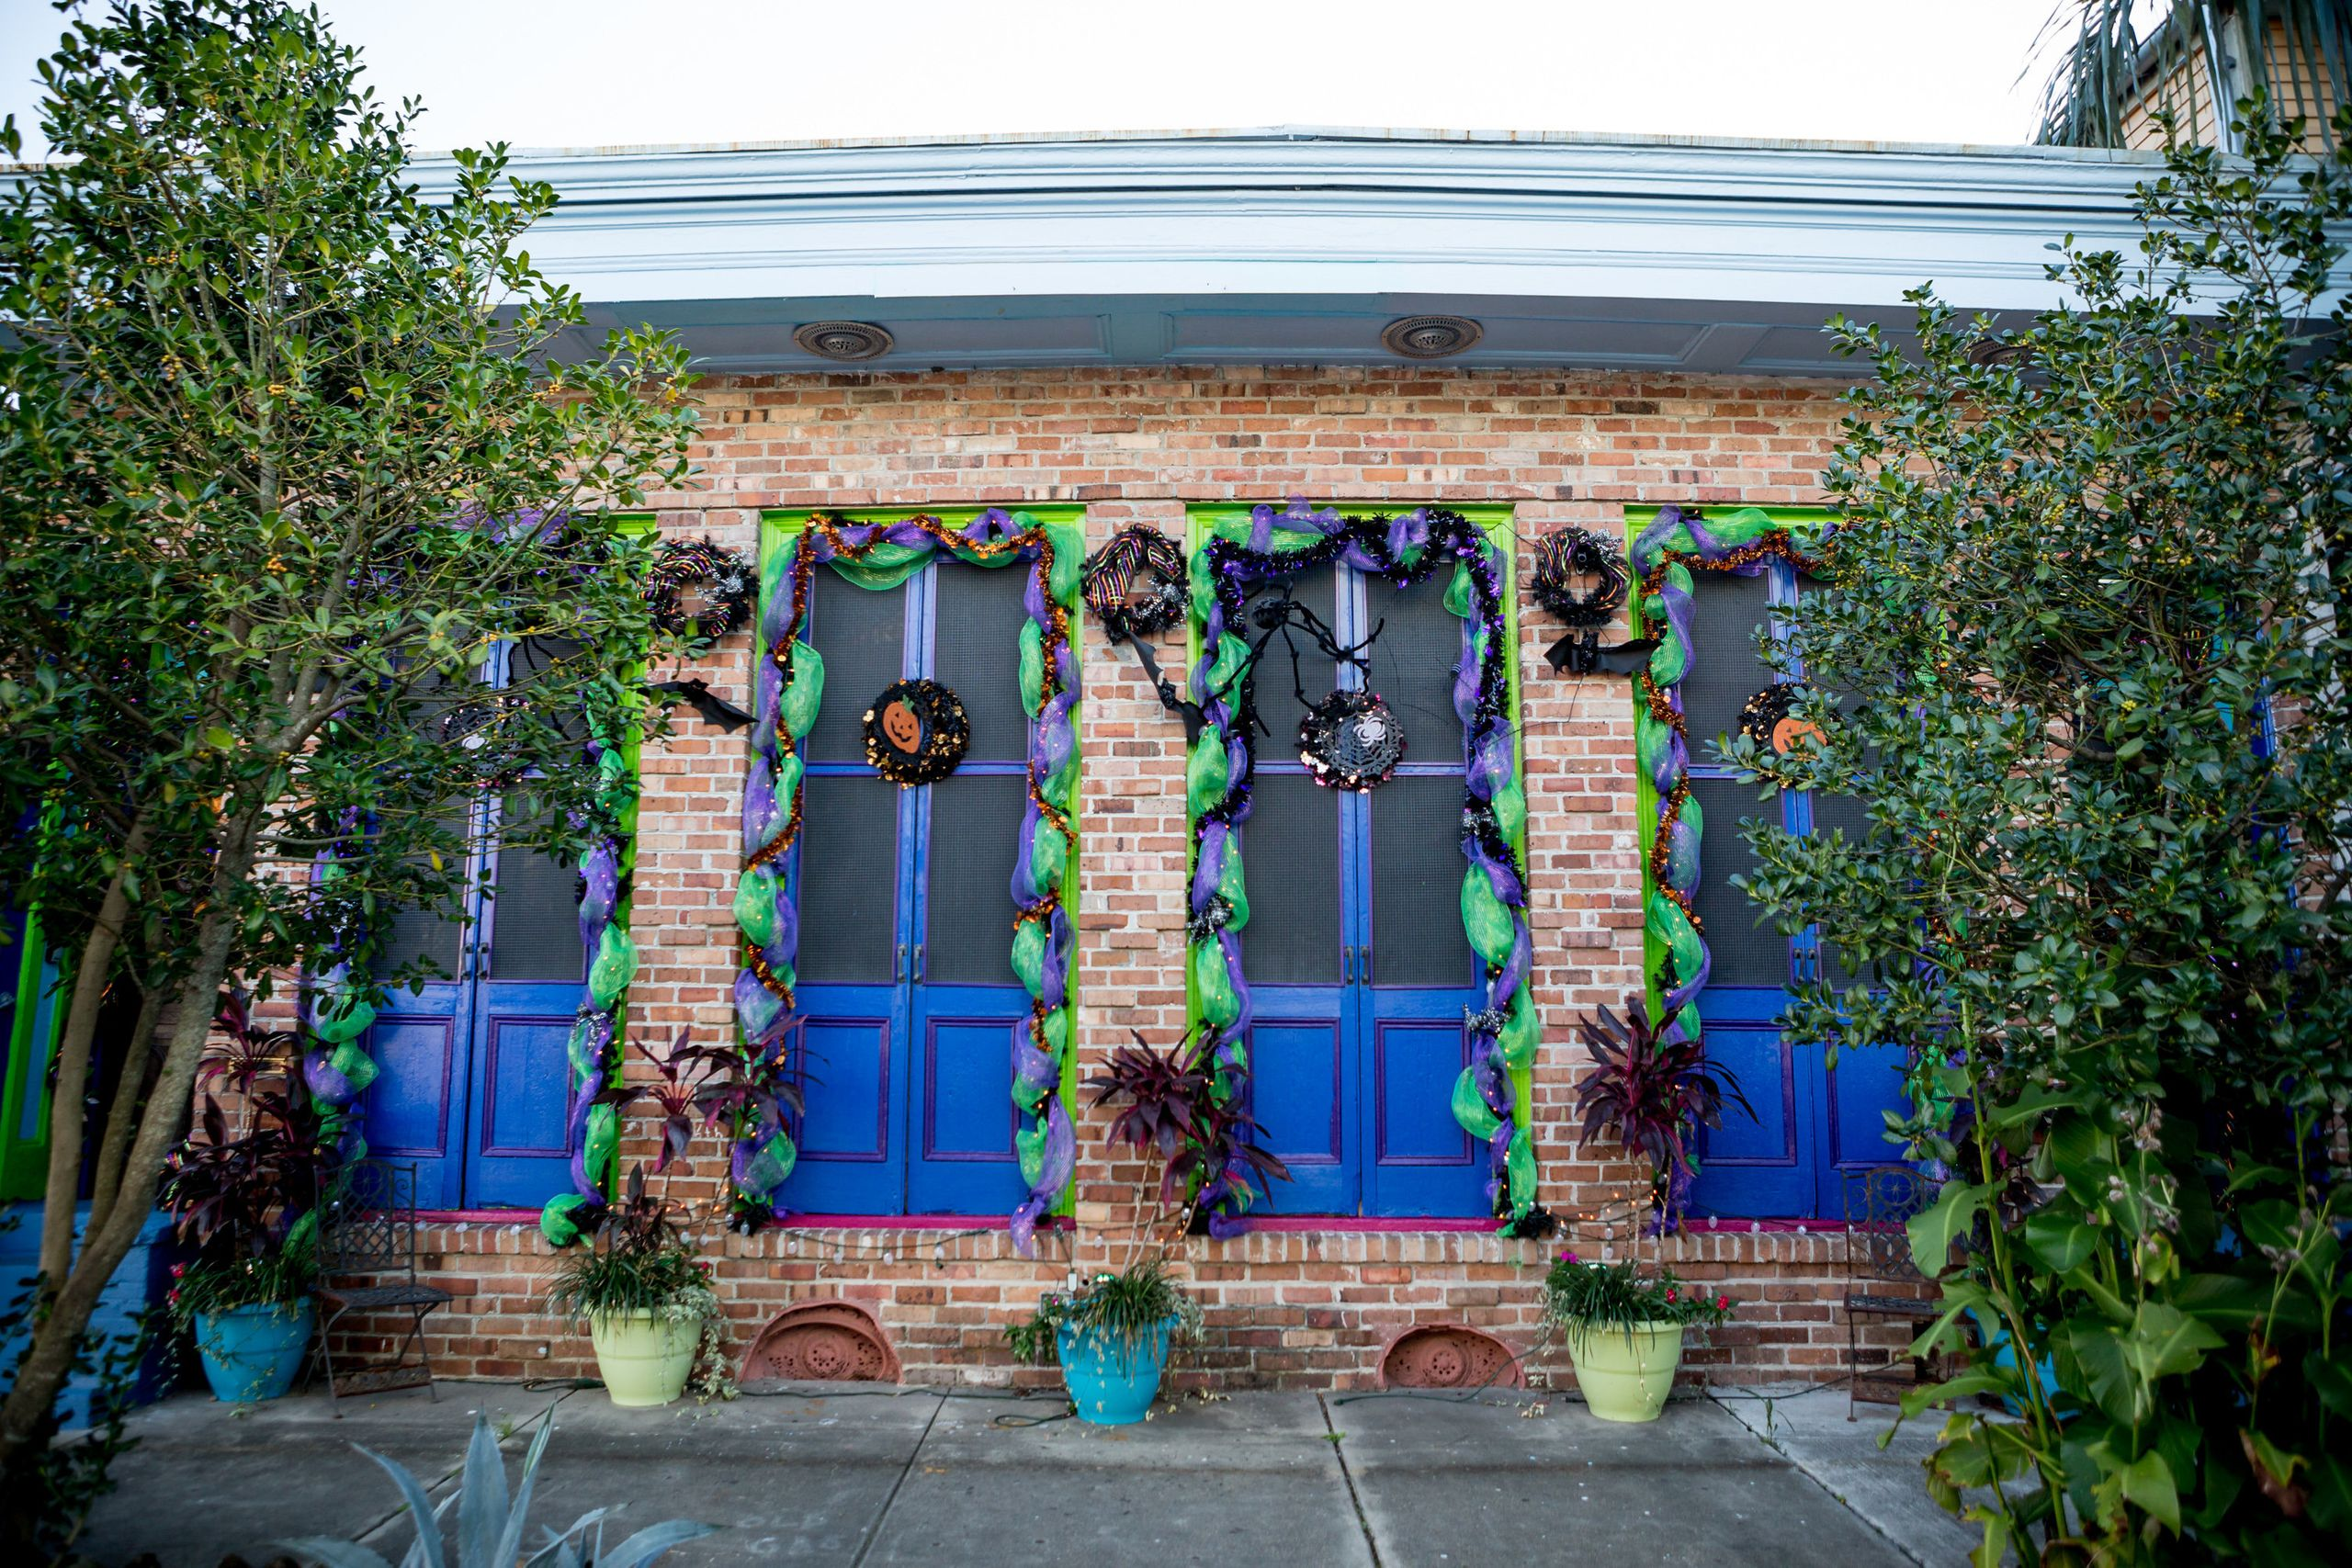 Ornate decor outside homes often is a sign that the space is being used for short-term rentals, says Meg Lousteau, a Treme re